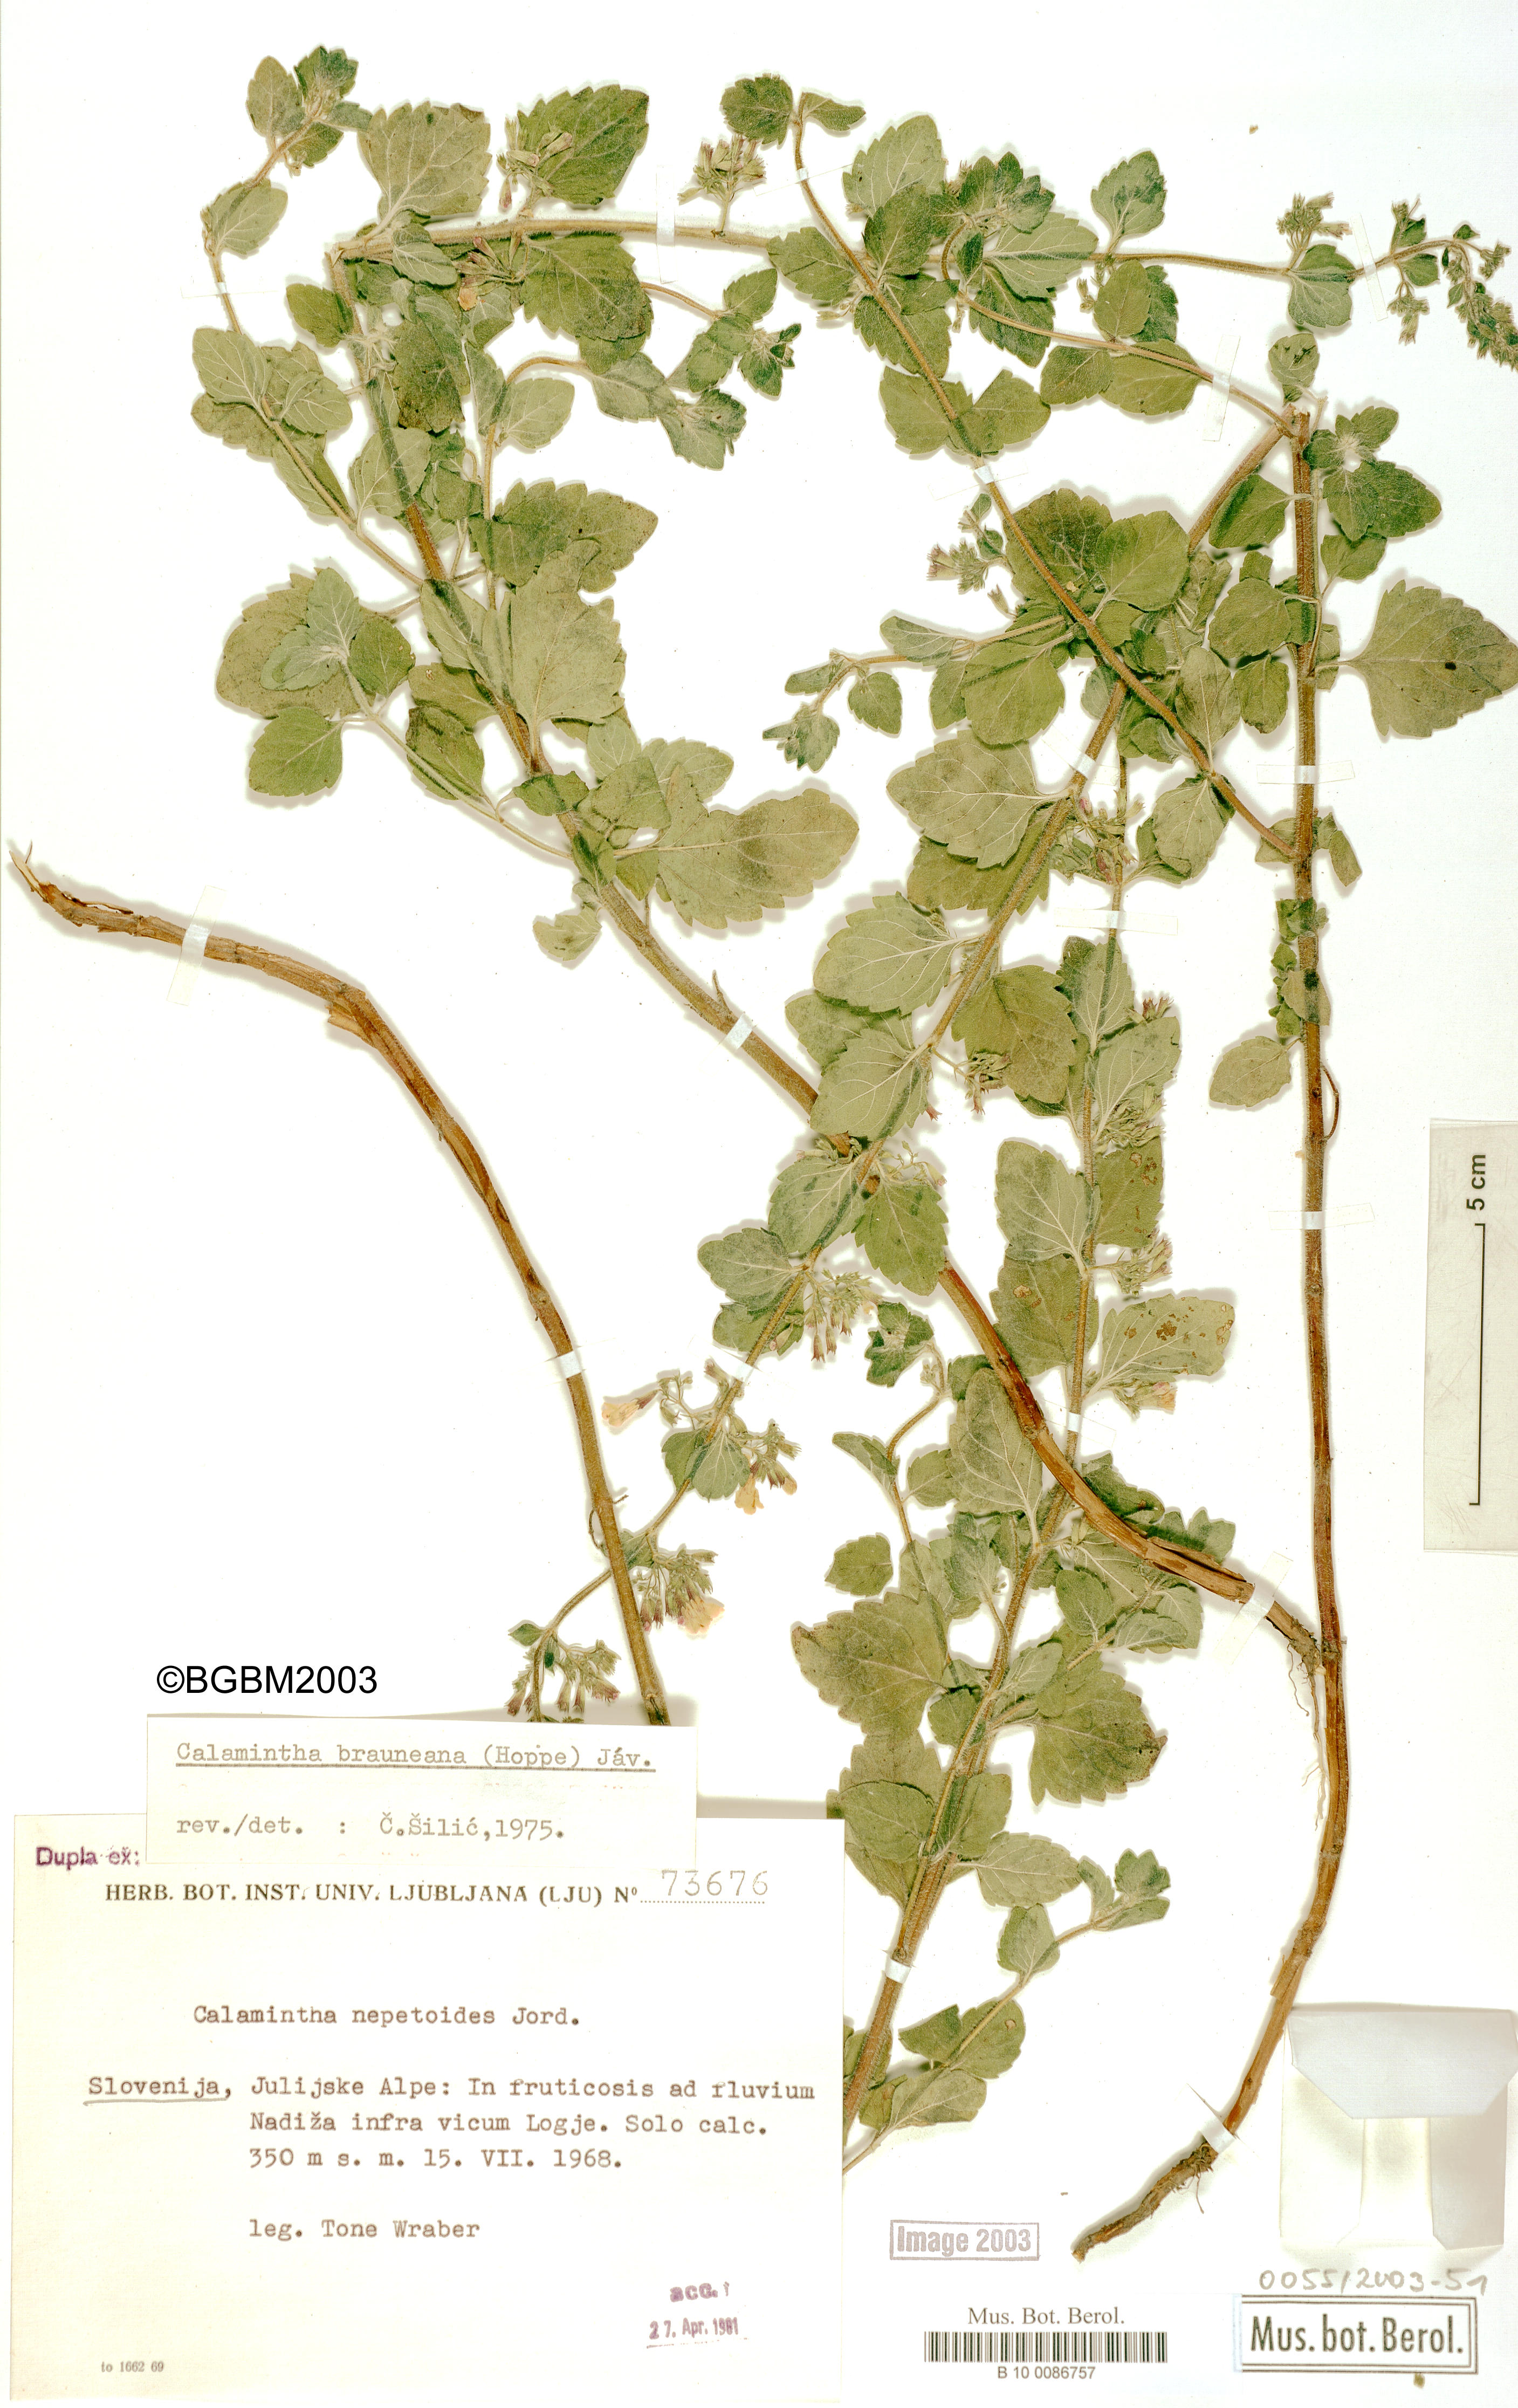 © Botanic Garden and Botanical Museum Berlin-Dahlem, Freie Universität Berlin<br>by Röpert, D. (Ed.) 2000- (continuously updated): Digital specimen images at the Herbarium Berolinense. - Published on the Internet http://ww2.bgbm.org/herbarium/ (Barcode: B 10 0086757 / ImageId: 211741) [accessed 26-Nov-11].<br>